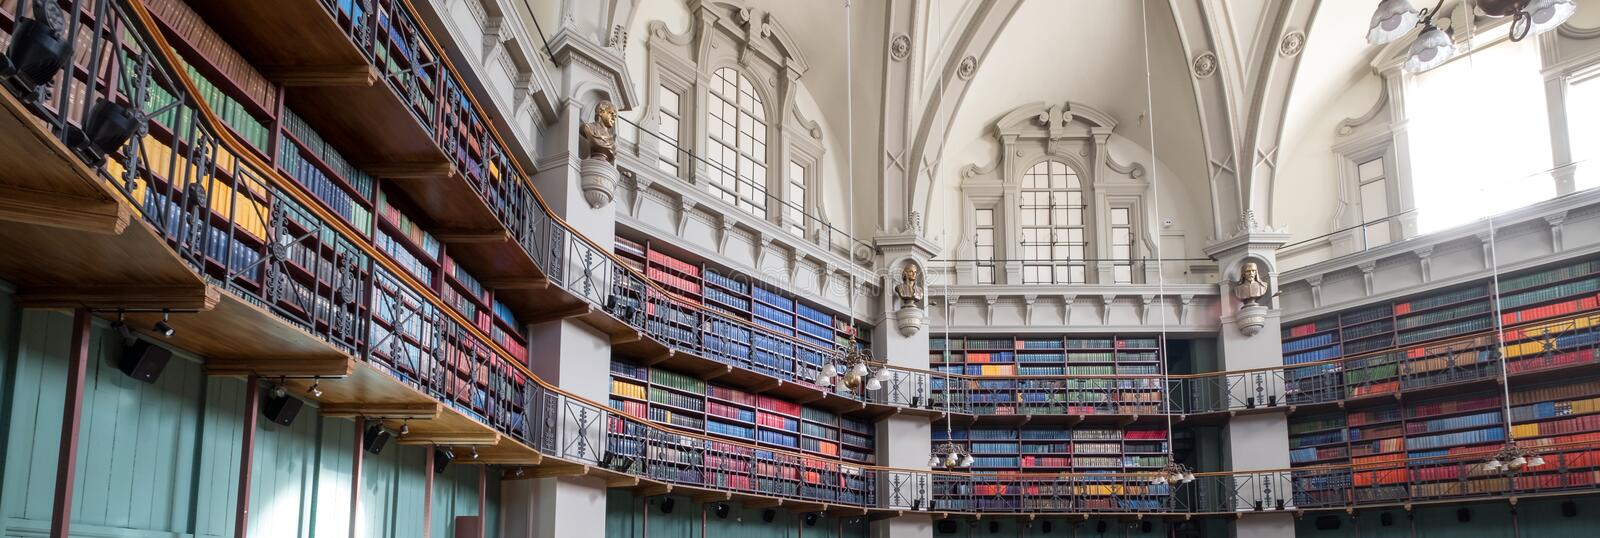 Panoramic photo of the interior of the historic Octagon Library at Queen Mary, University of London, Mile End UK. royalty free stock image